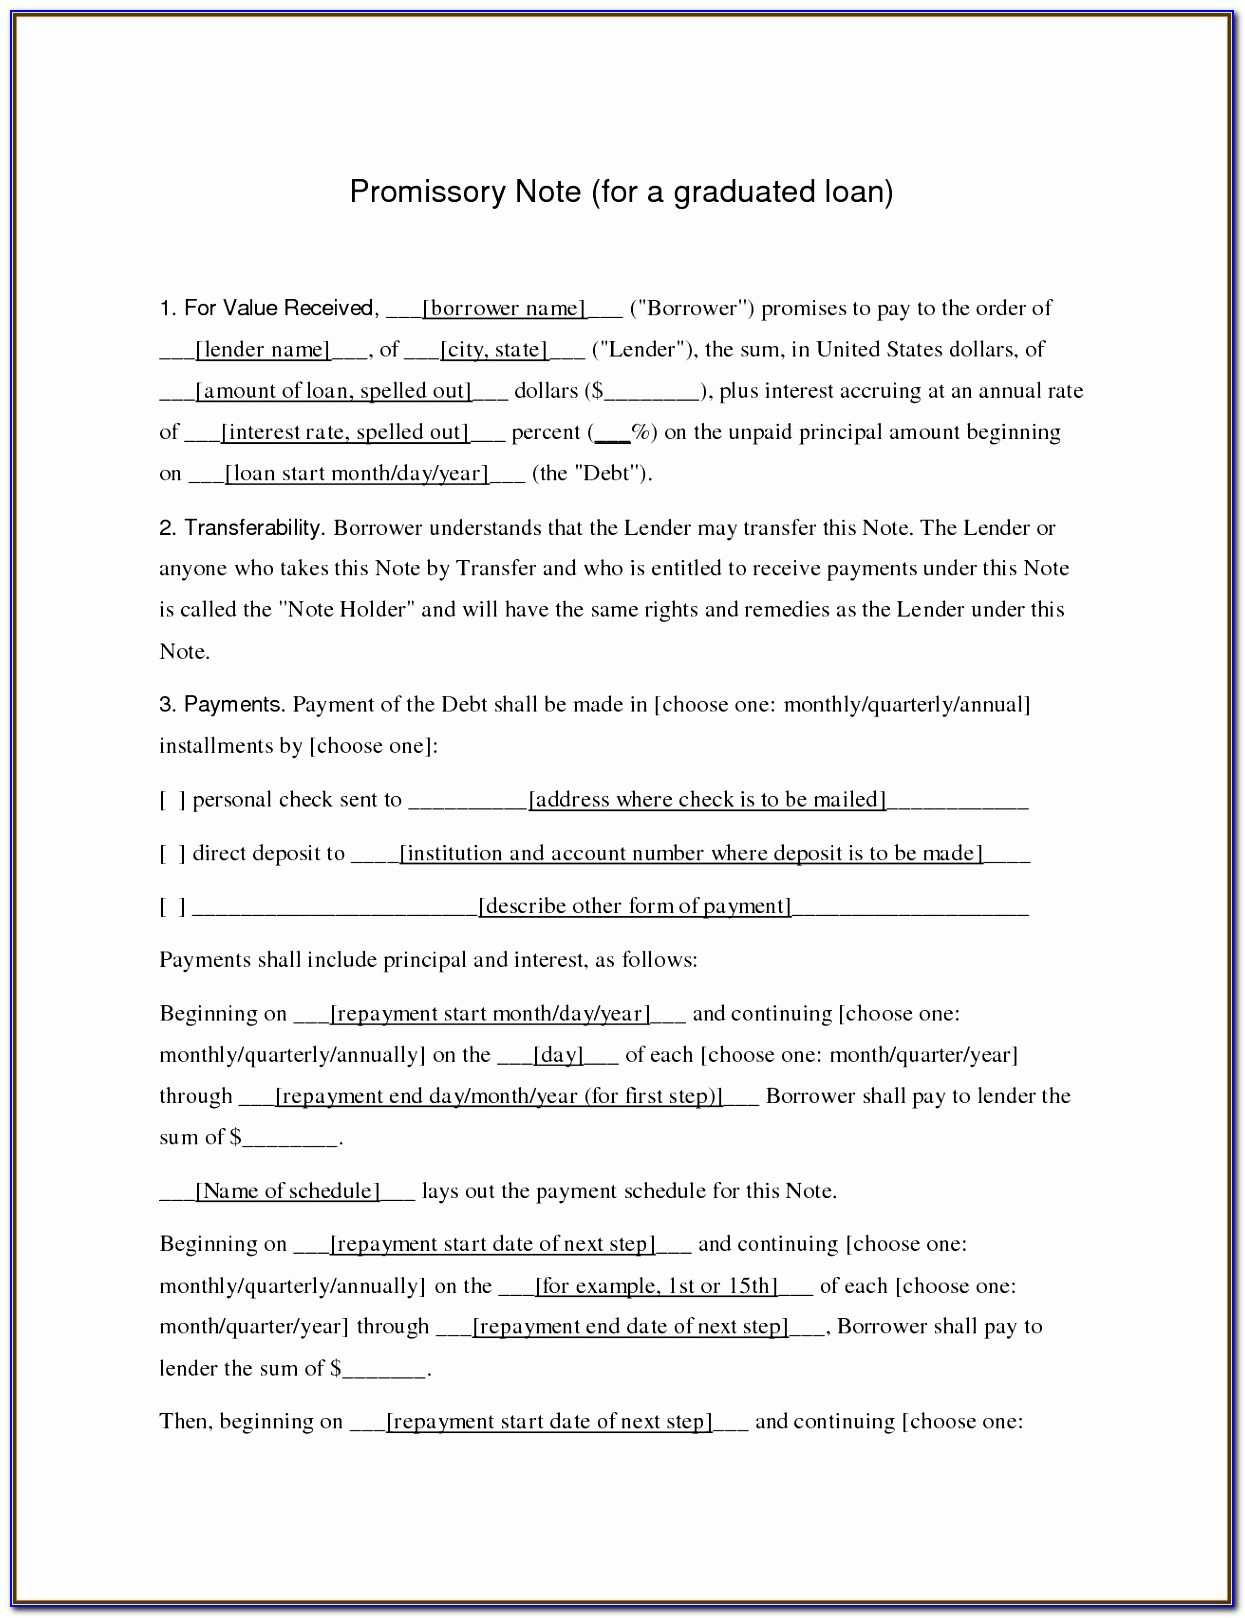 Promissory Note Template California Atgwf Ideas Promissory Note California Template 1 ? Best Quality